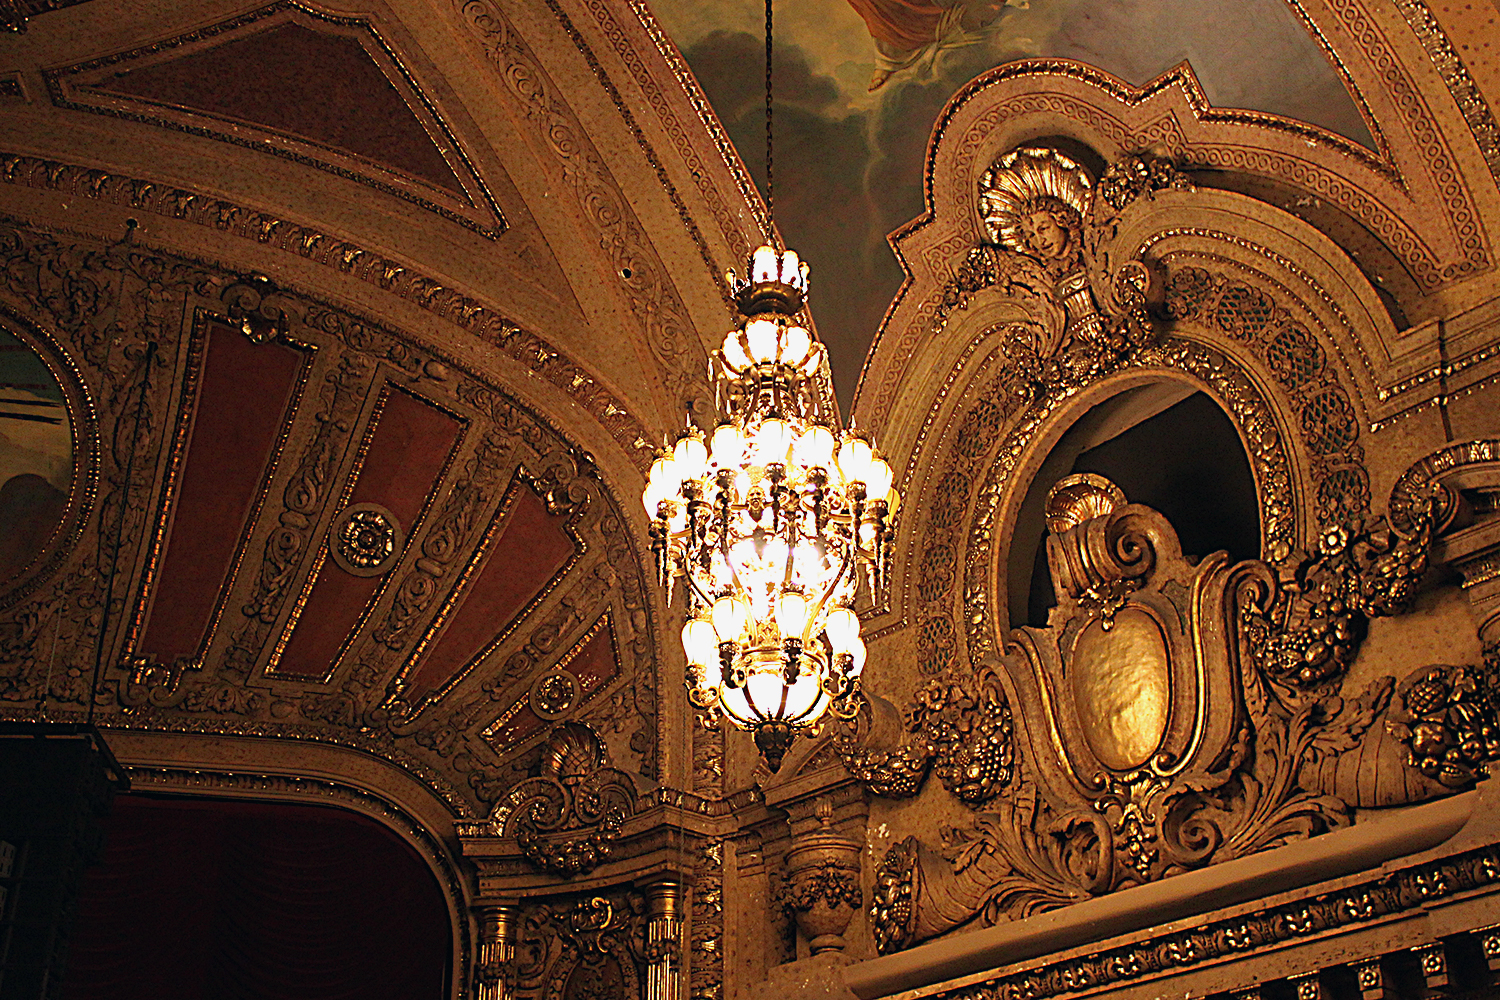 Ornate molding, detailed chandeliers and hand-painted murals adorn every turn of the lavish Chicago Theatre (Photo: Andrew Stephens)